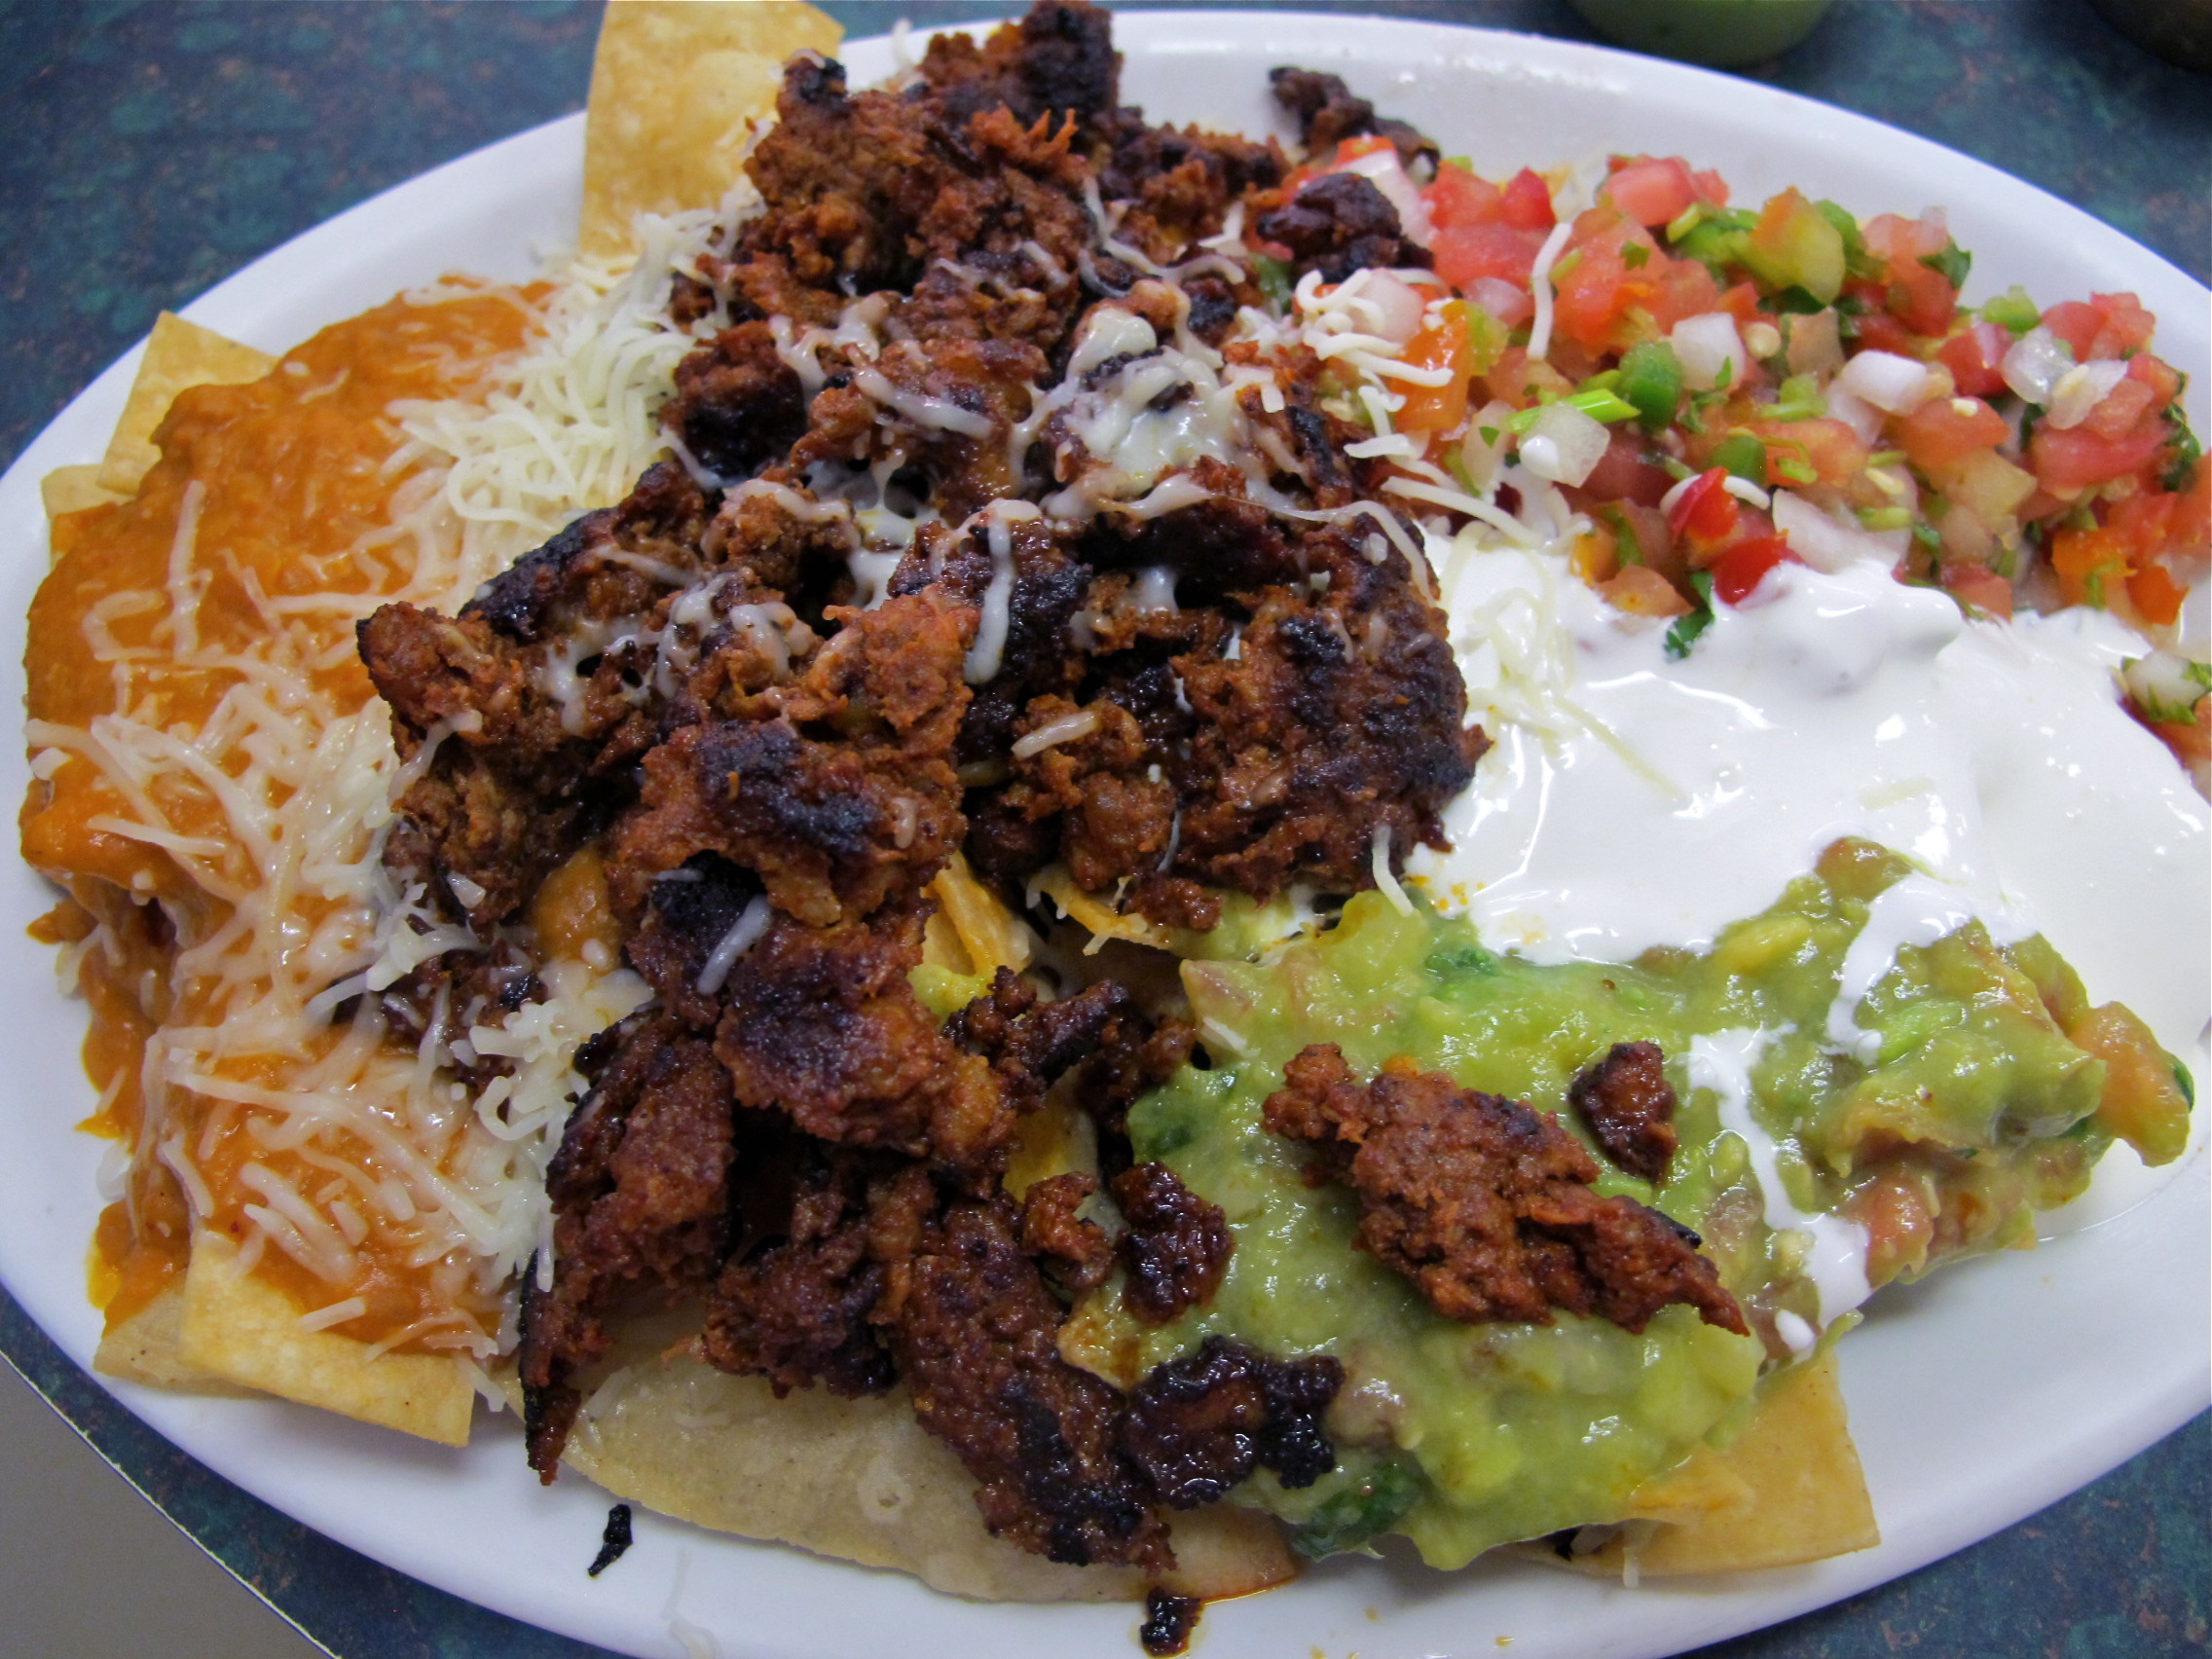 http://www.tablehopper.com/jetsetter/assets/guadlajara-nachos.JPG